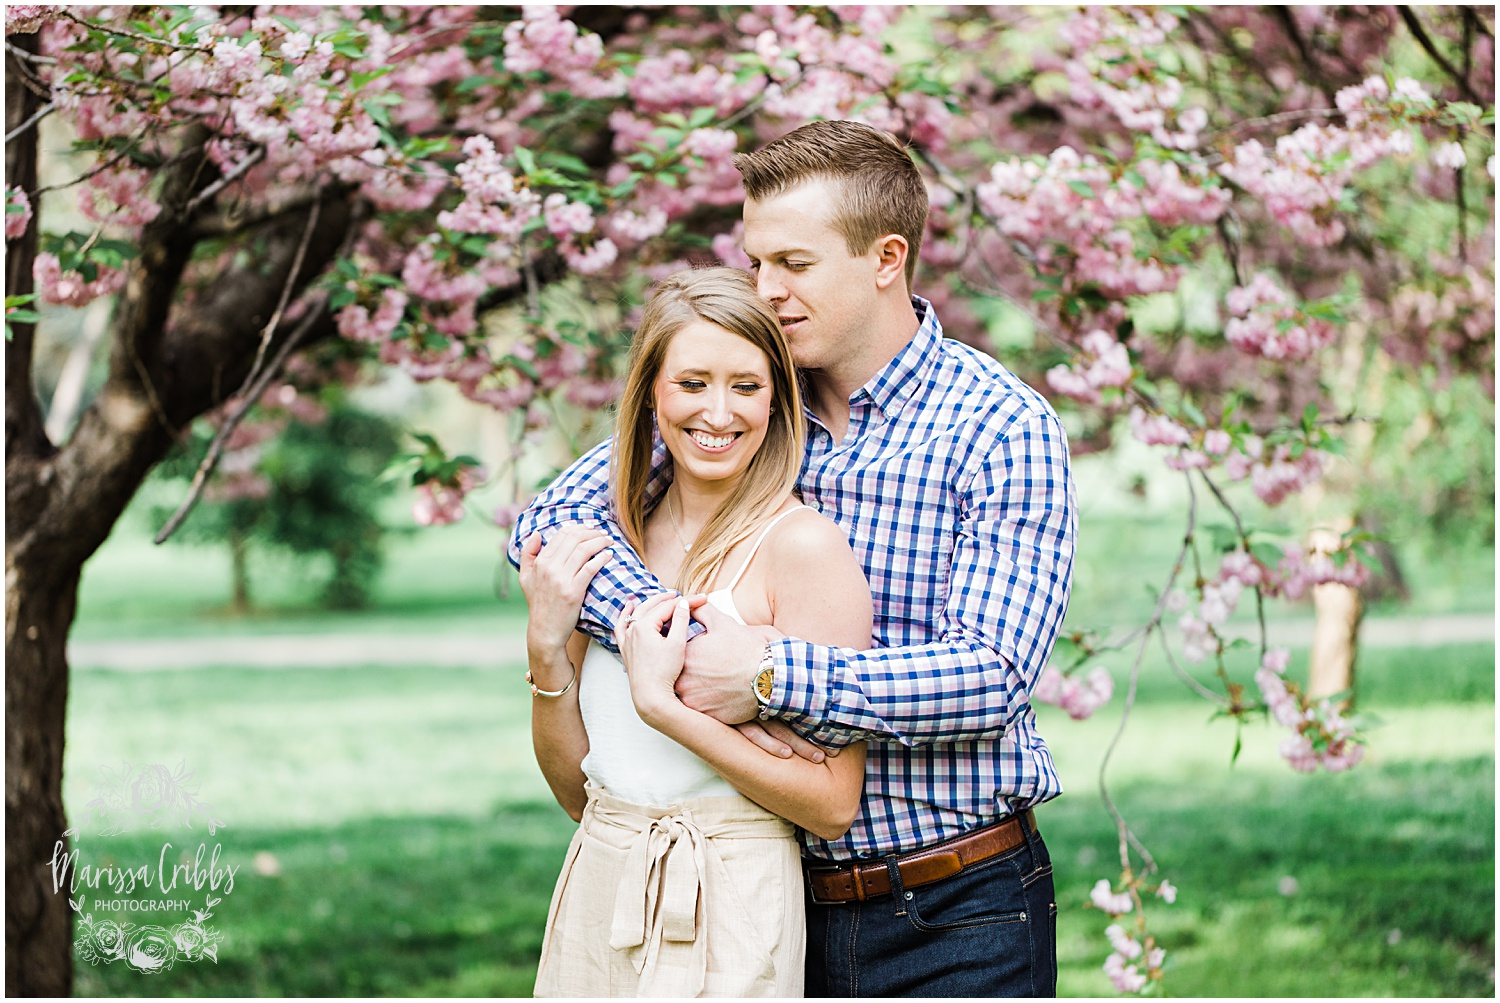 MADDY & KYLE ENGAGEMENT | MARISSA CRIBBS PHOTOGRAPHY_7605.jpg